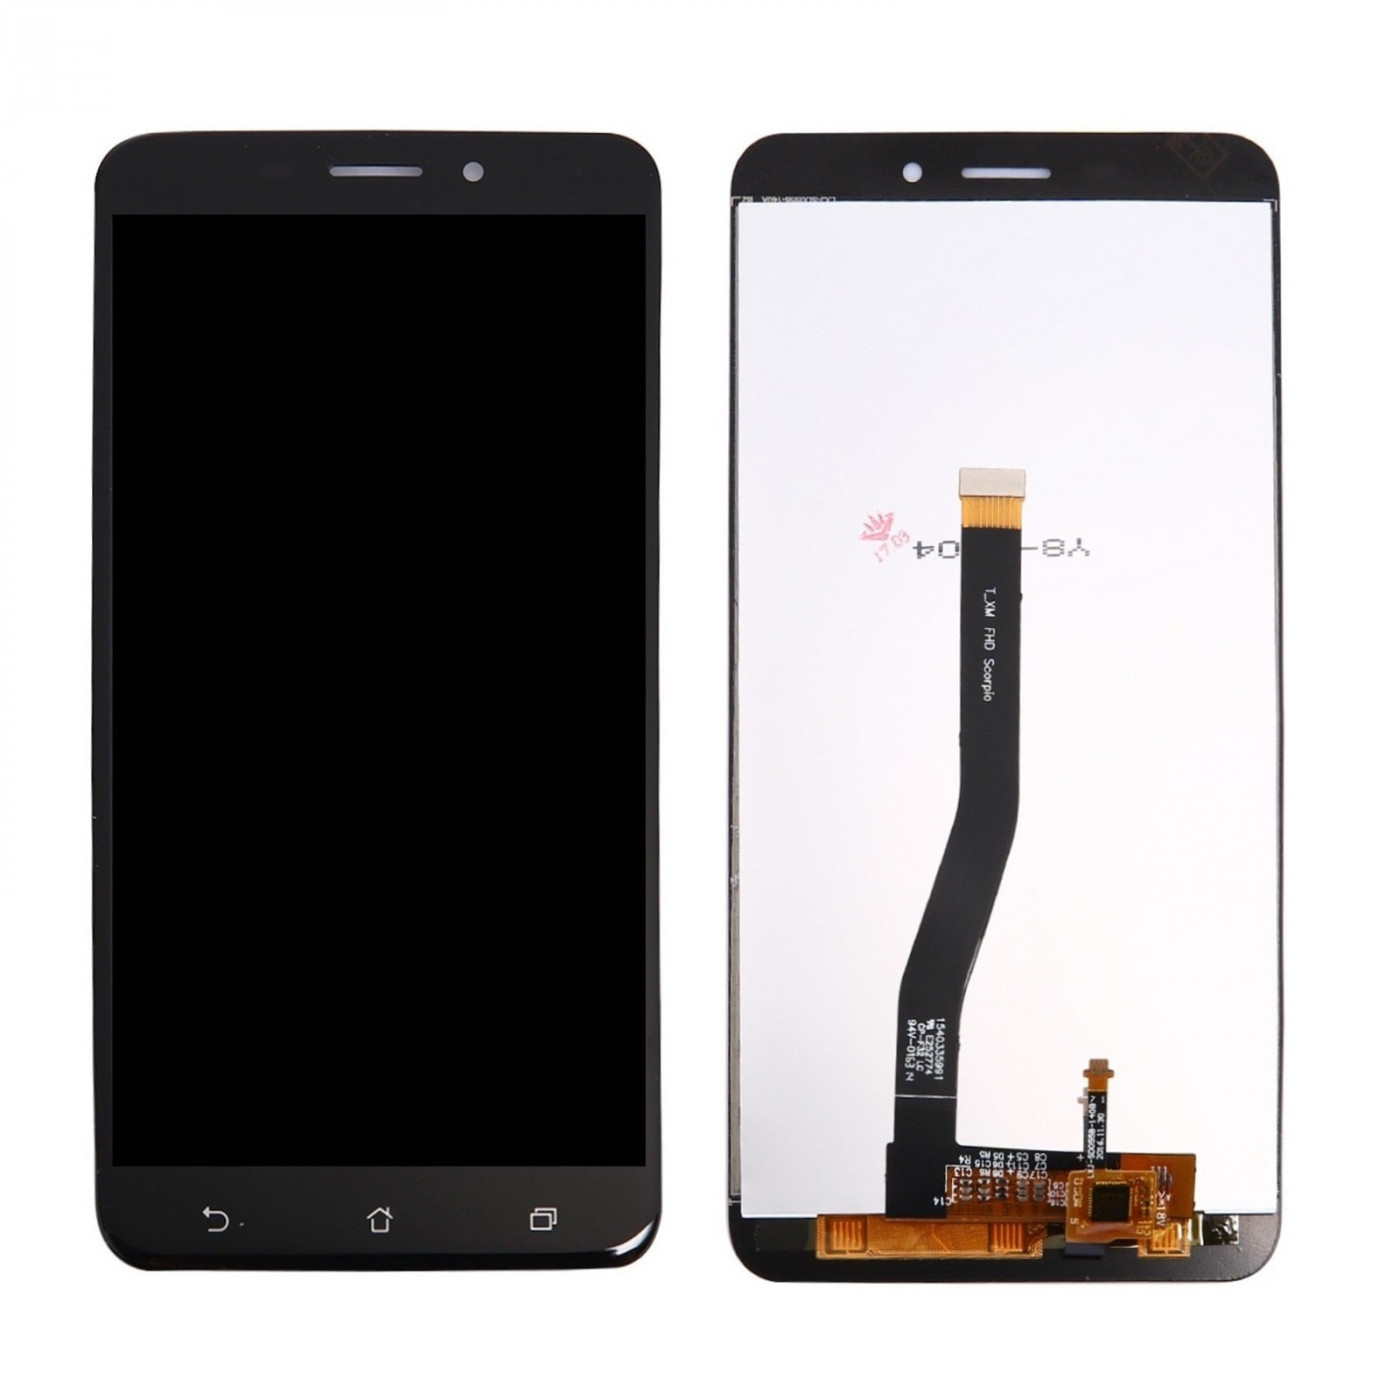 TOUCH SCREEN VETRO + LCD DISPLAY Per Asus Zenfone 3 Laser ZC551KL Z01BS Nero